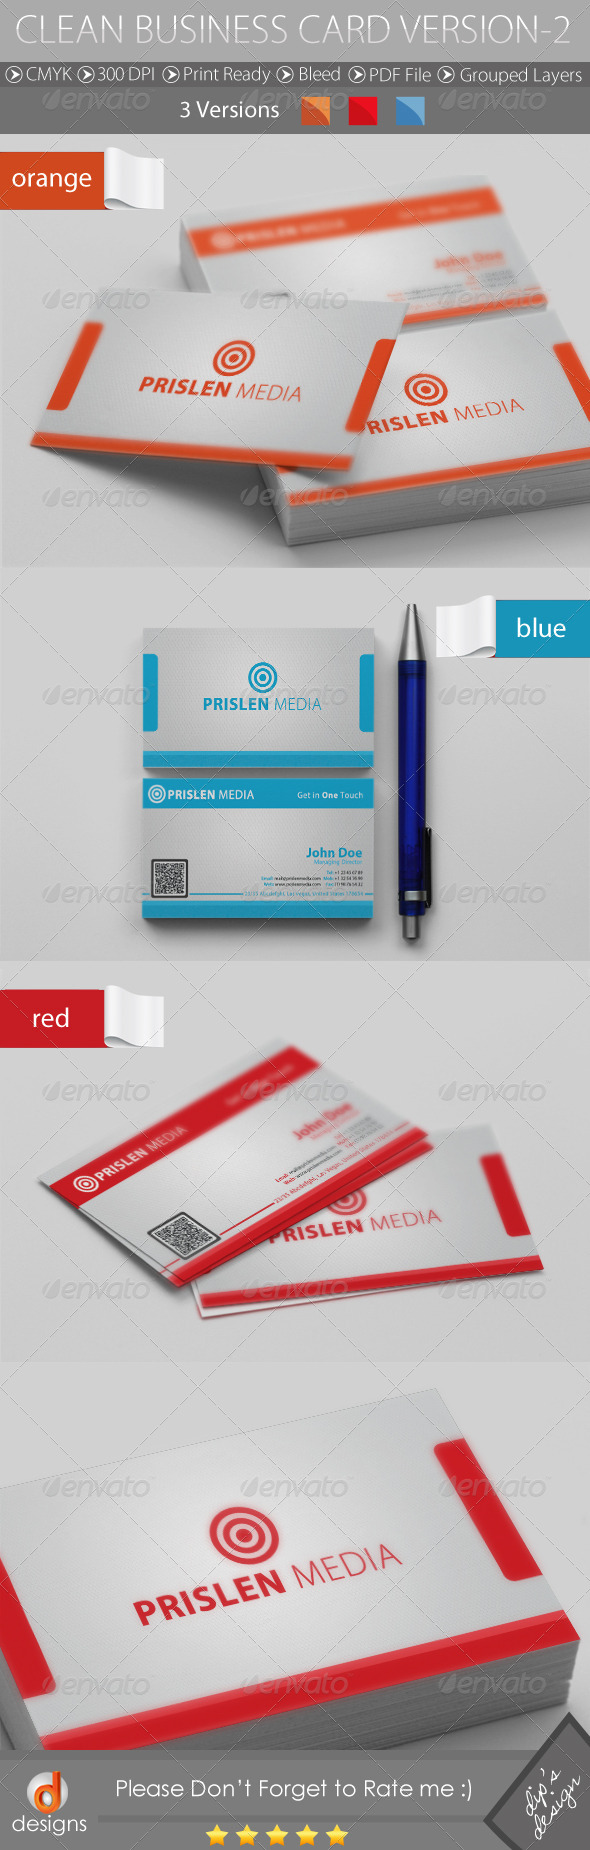 CLEAN BUSINESS CARD VERSION-2 - Business Cards Print Templates